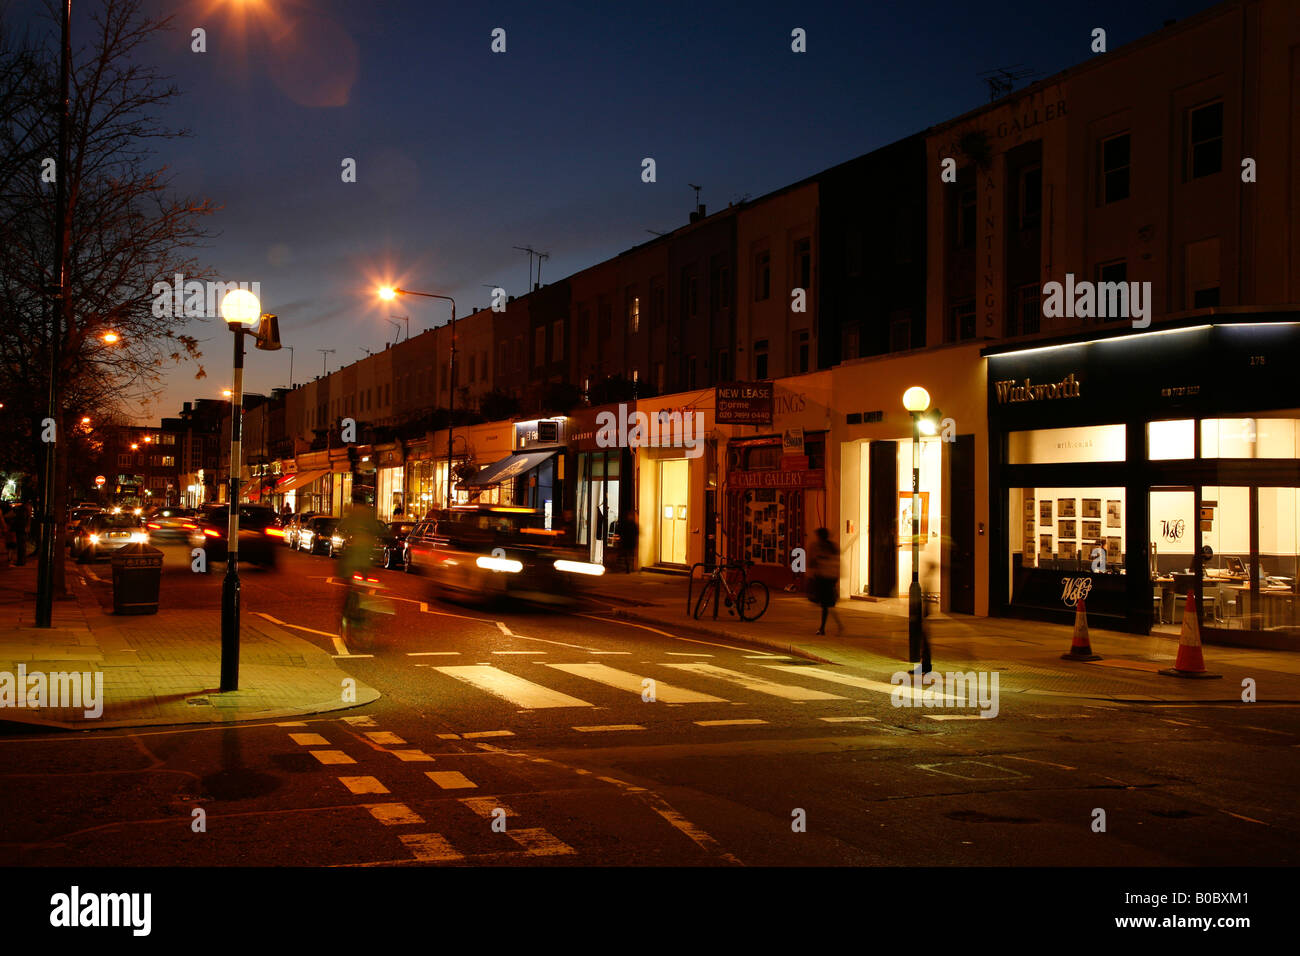 Parade of shops on Westbourne Grove, Notting Hill, London - Stock Image